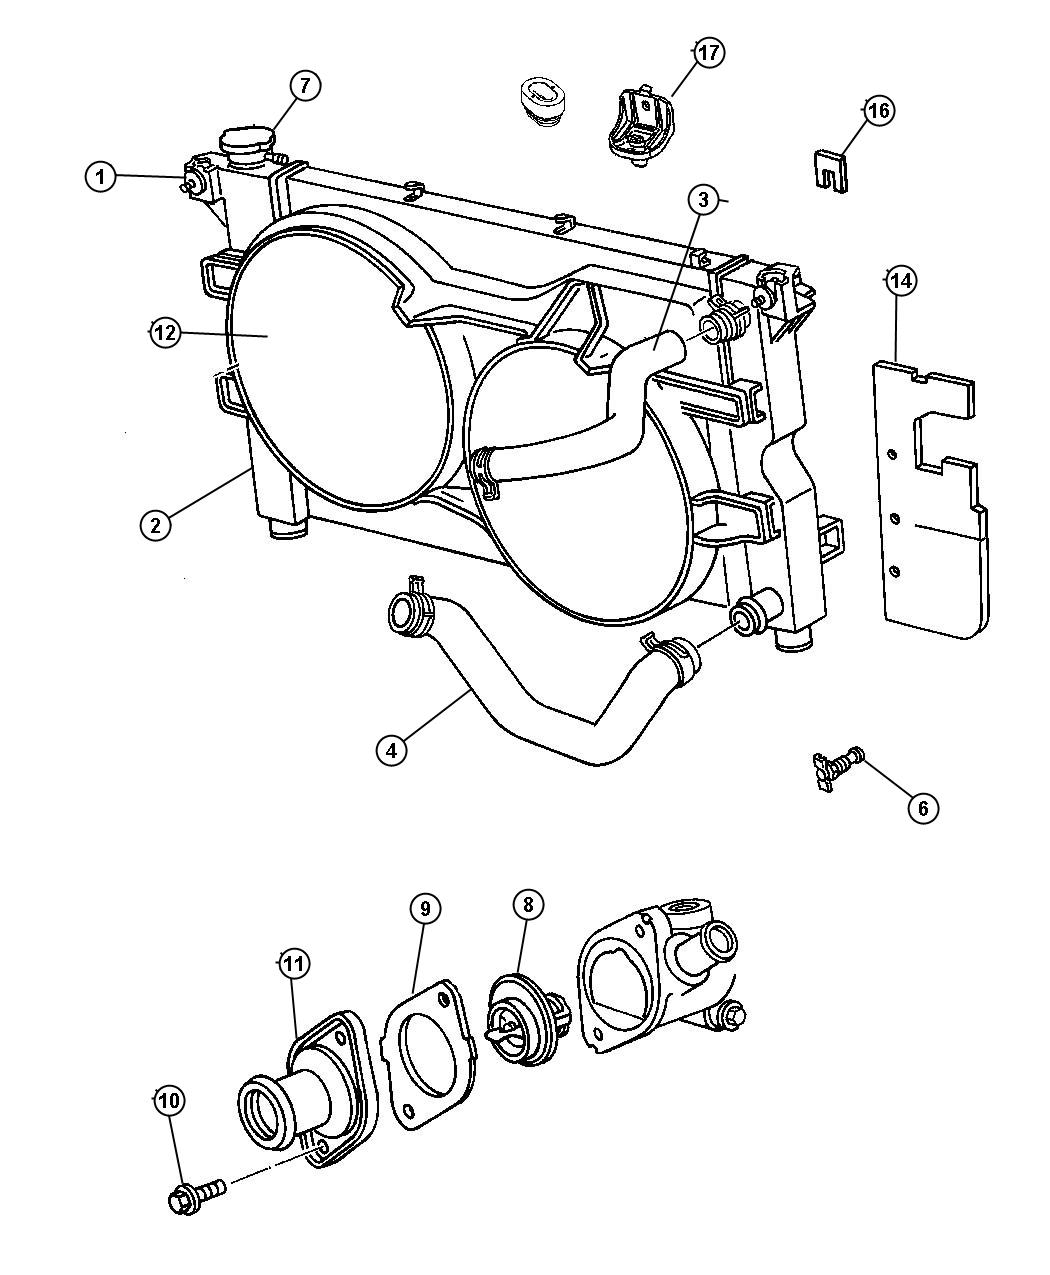 Diagram Radiator and Related Parts , 2.4L Engine. for your 2018 Dodge Grand Caravan